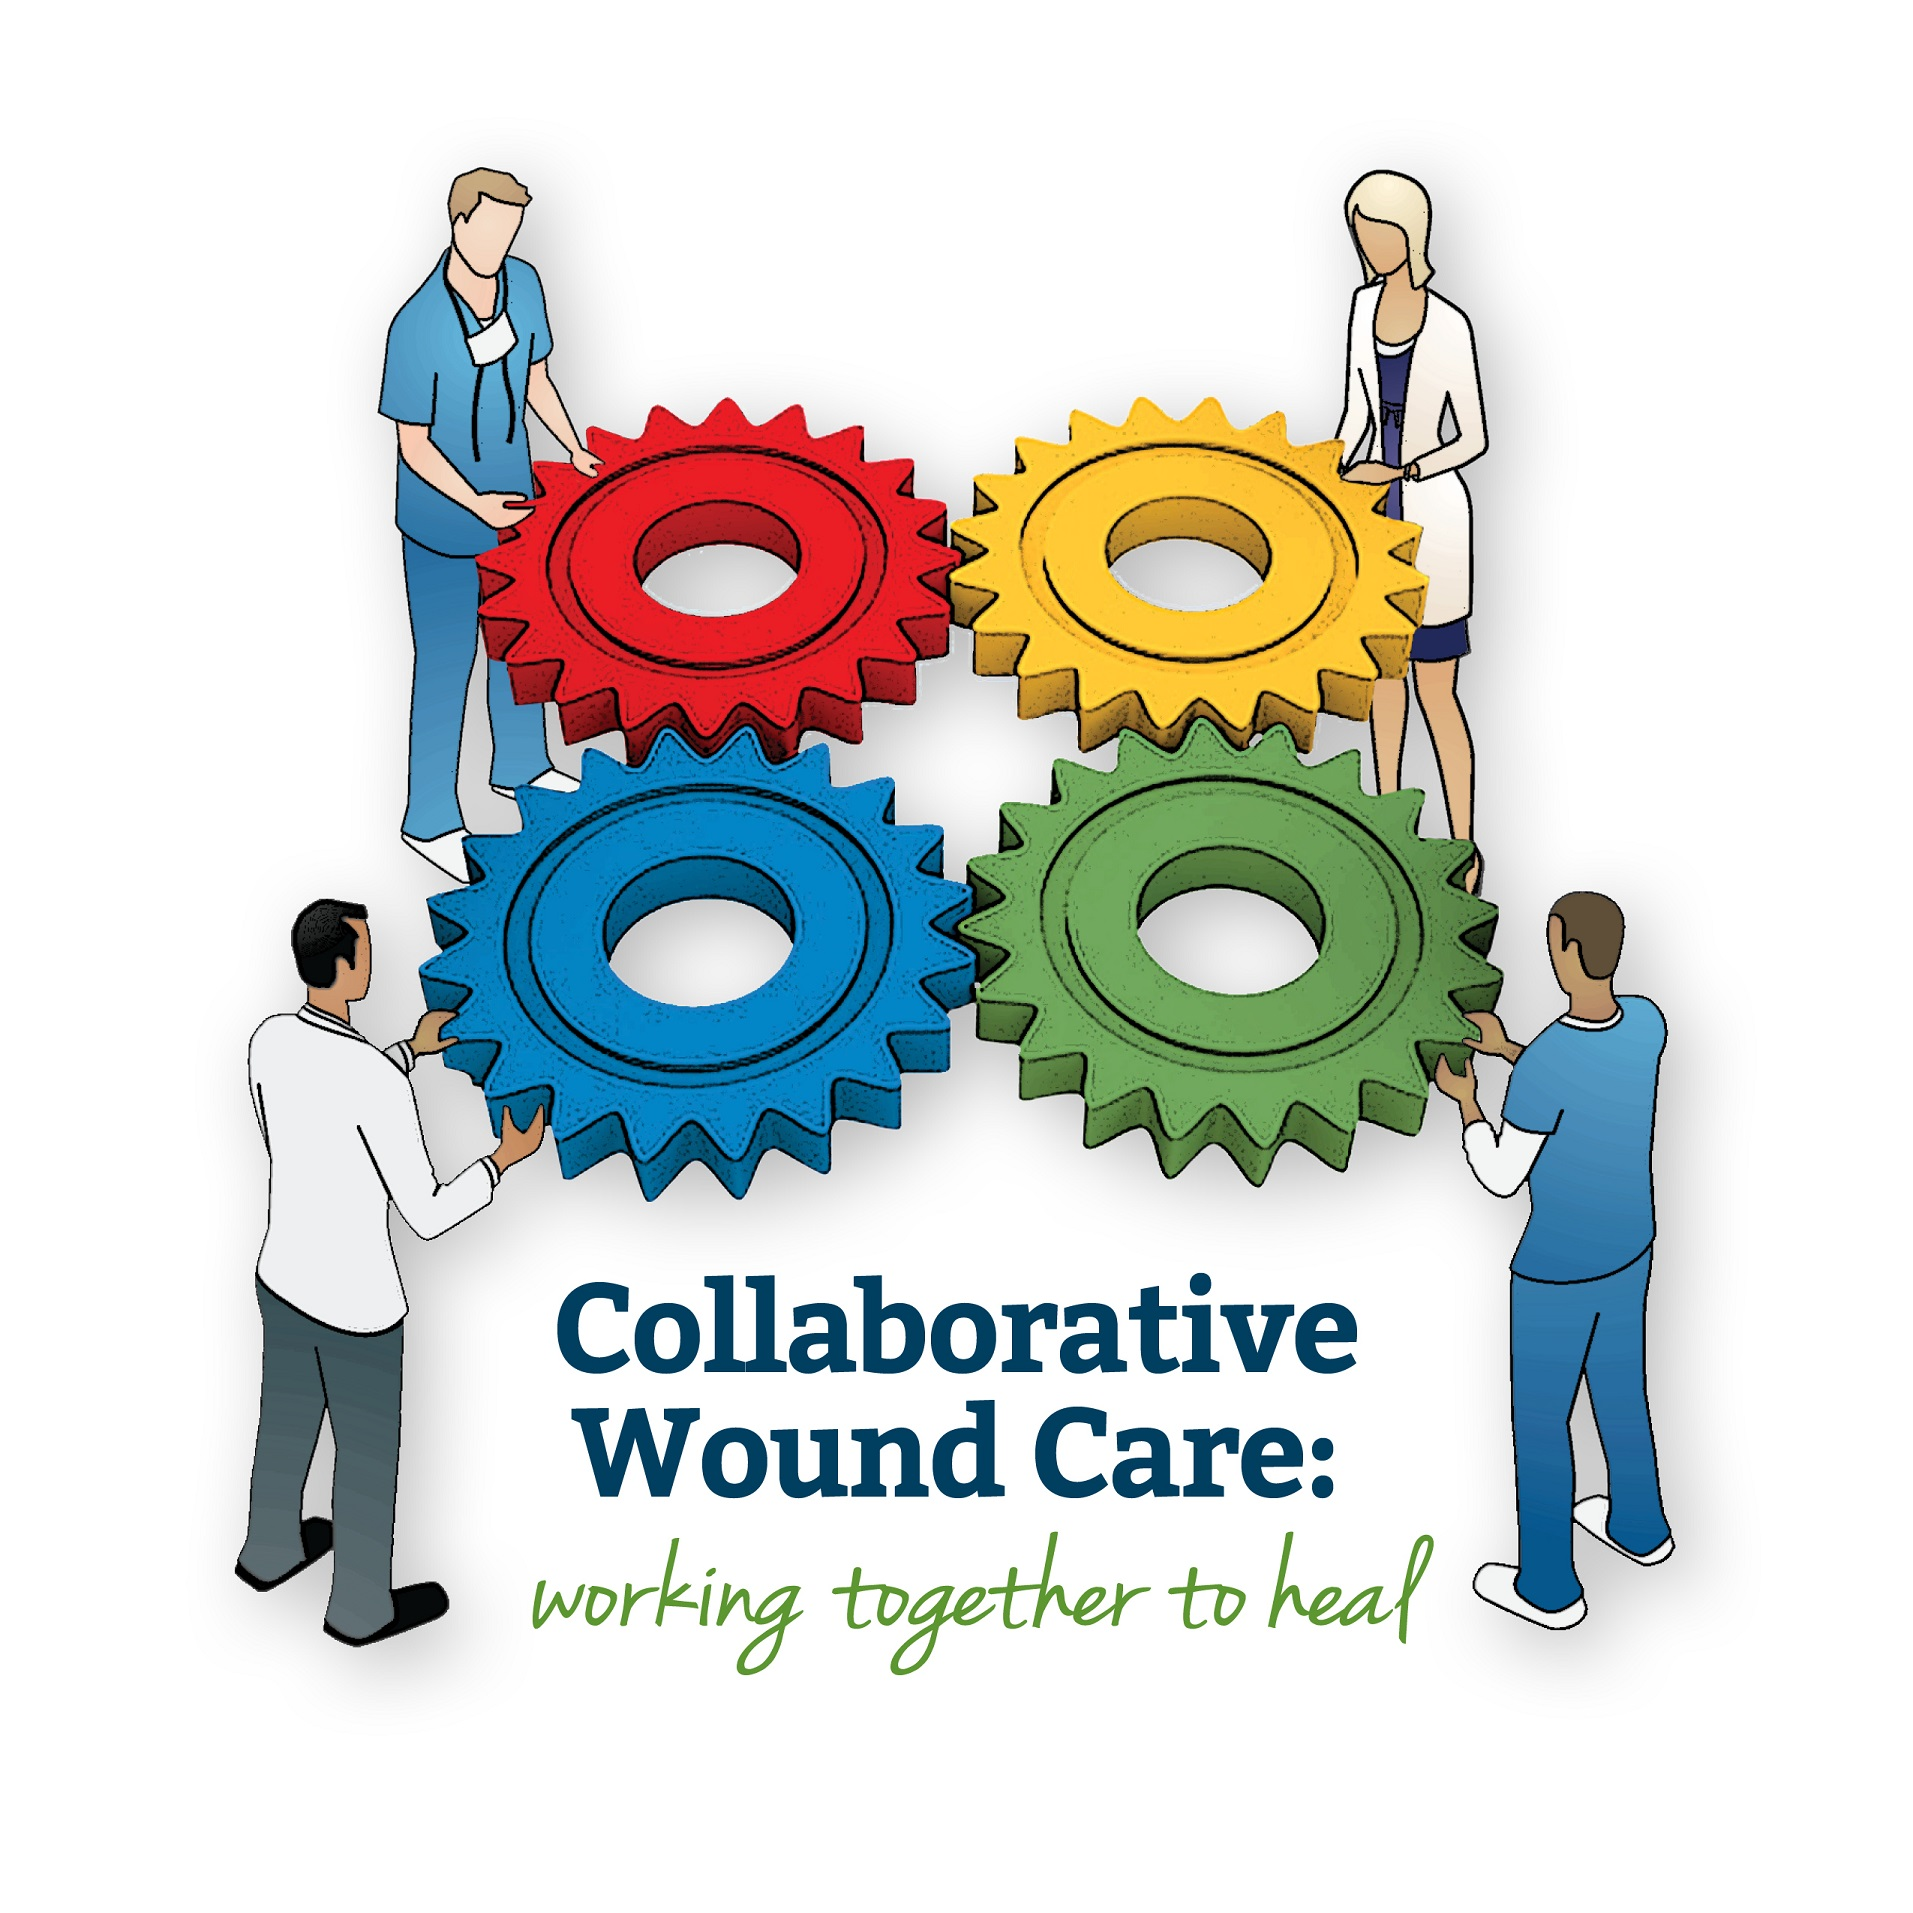 Advanced wound therapeutics symposium collaborative wound care event summary xflitez Gallery